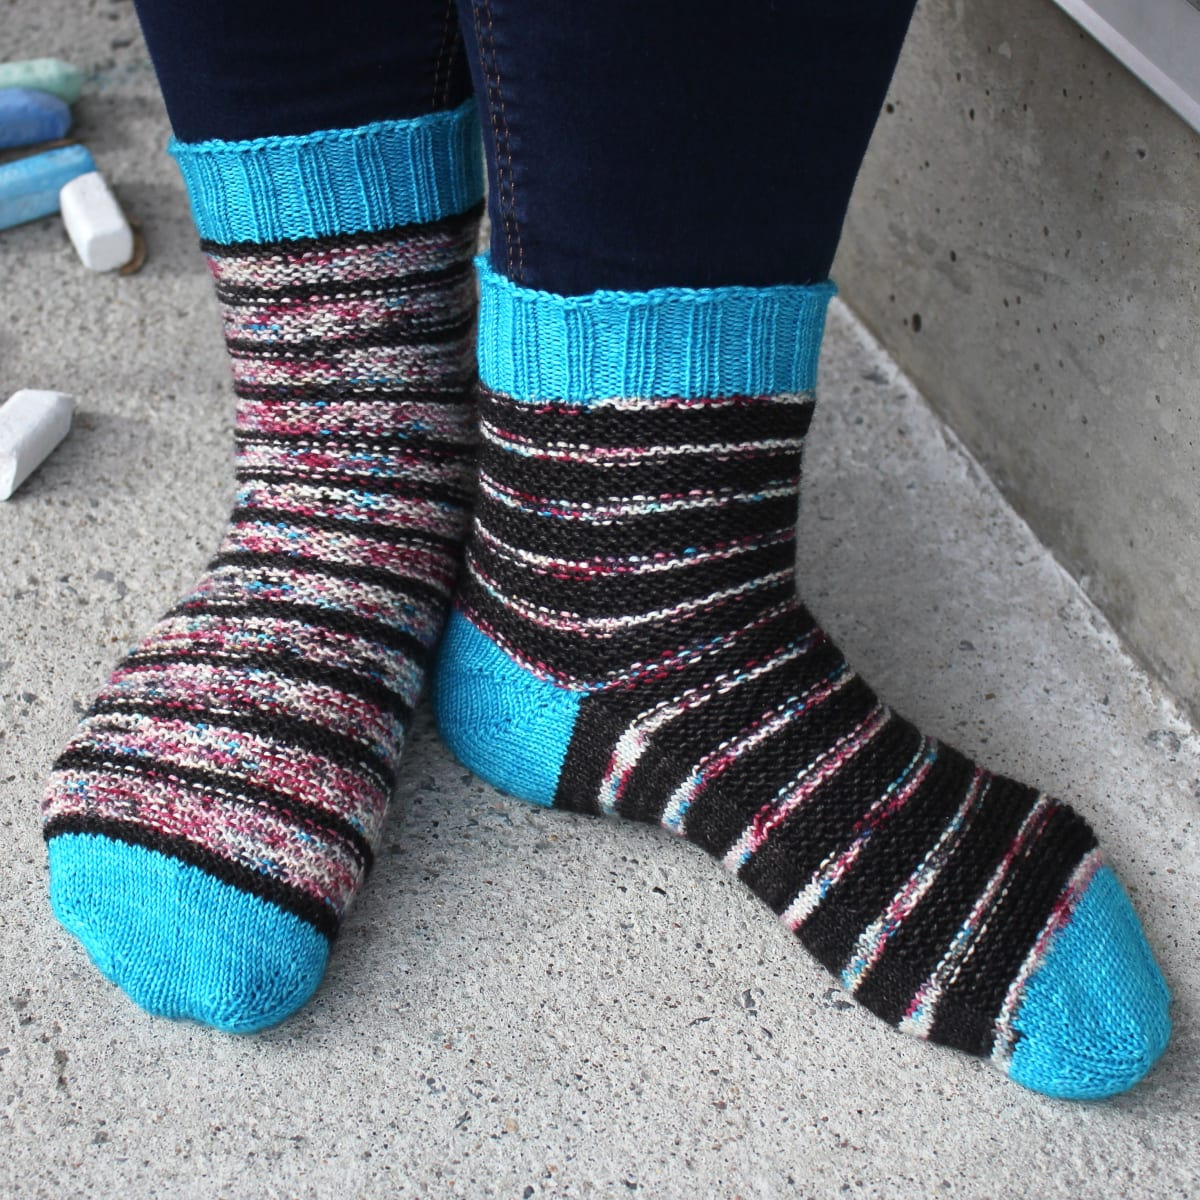 Front and side view of black and subtly-multicoloured striped socks with bumpy surface texture and bright blue heels, toes, and cuffs.